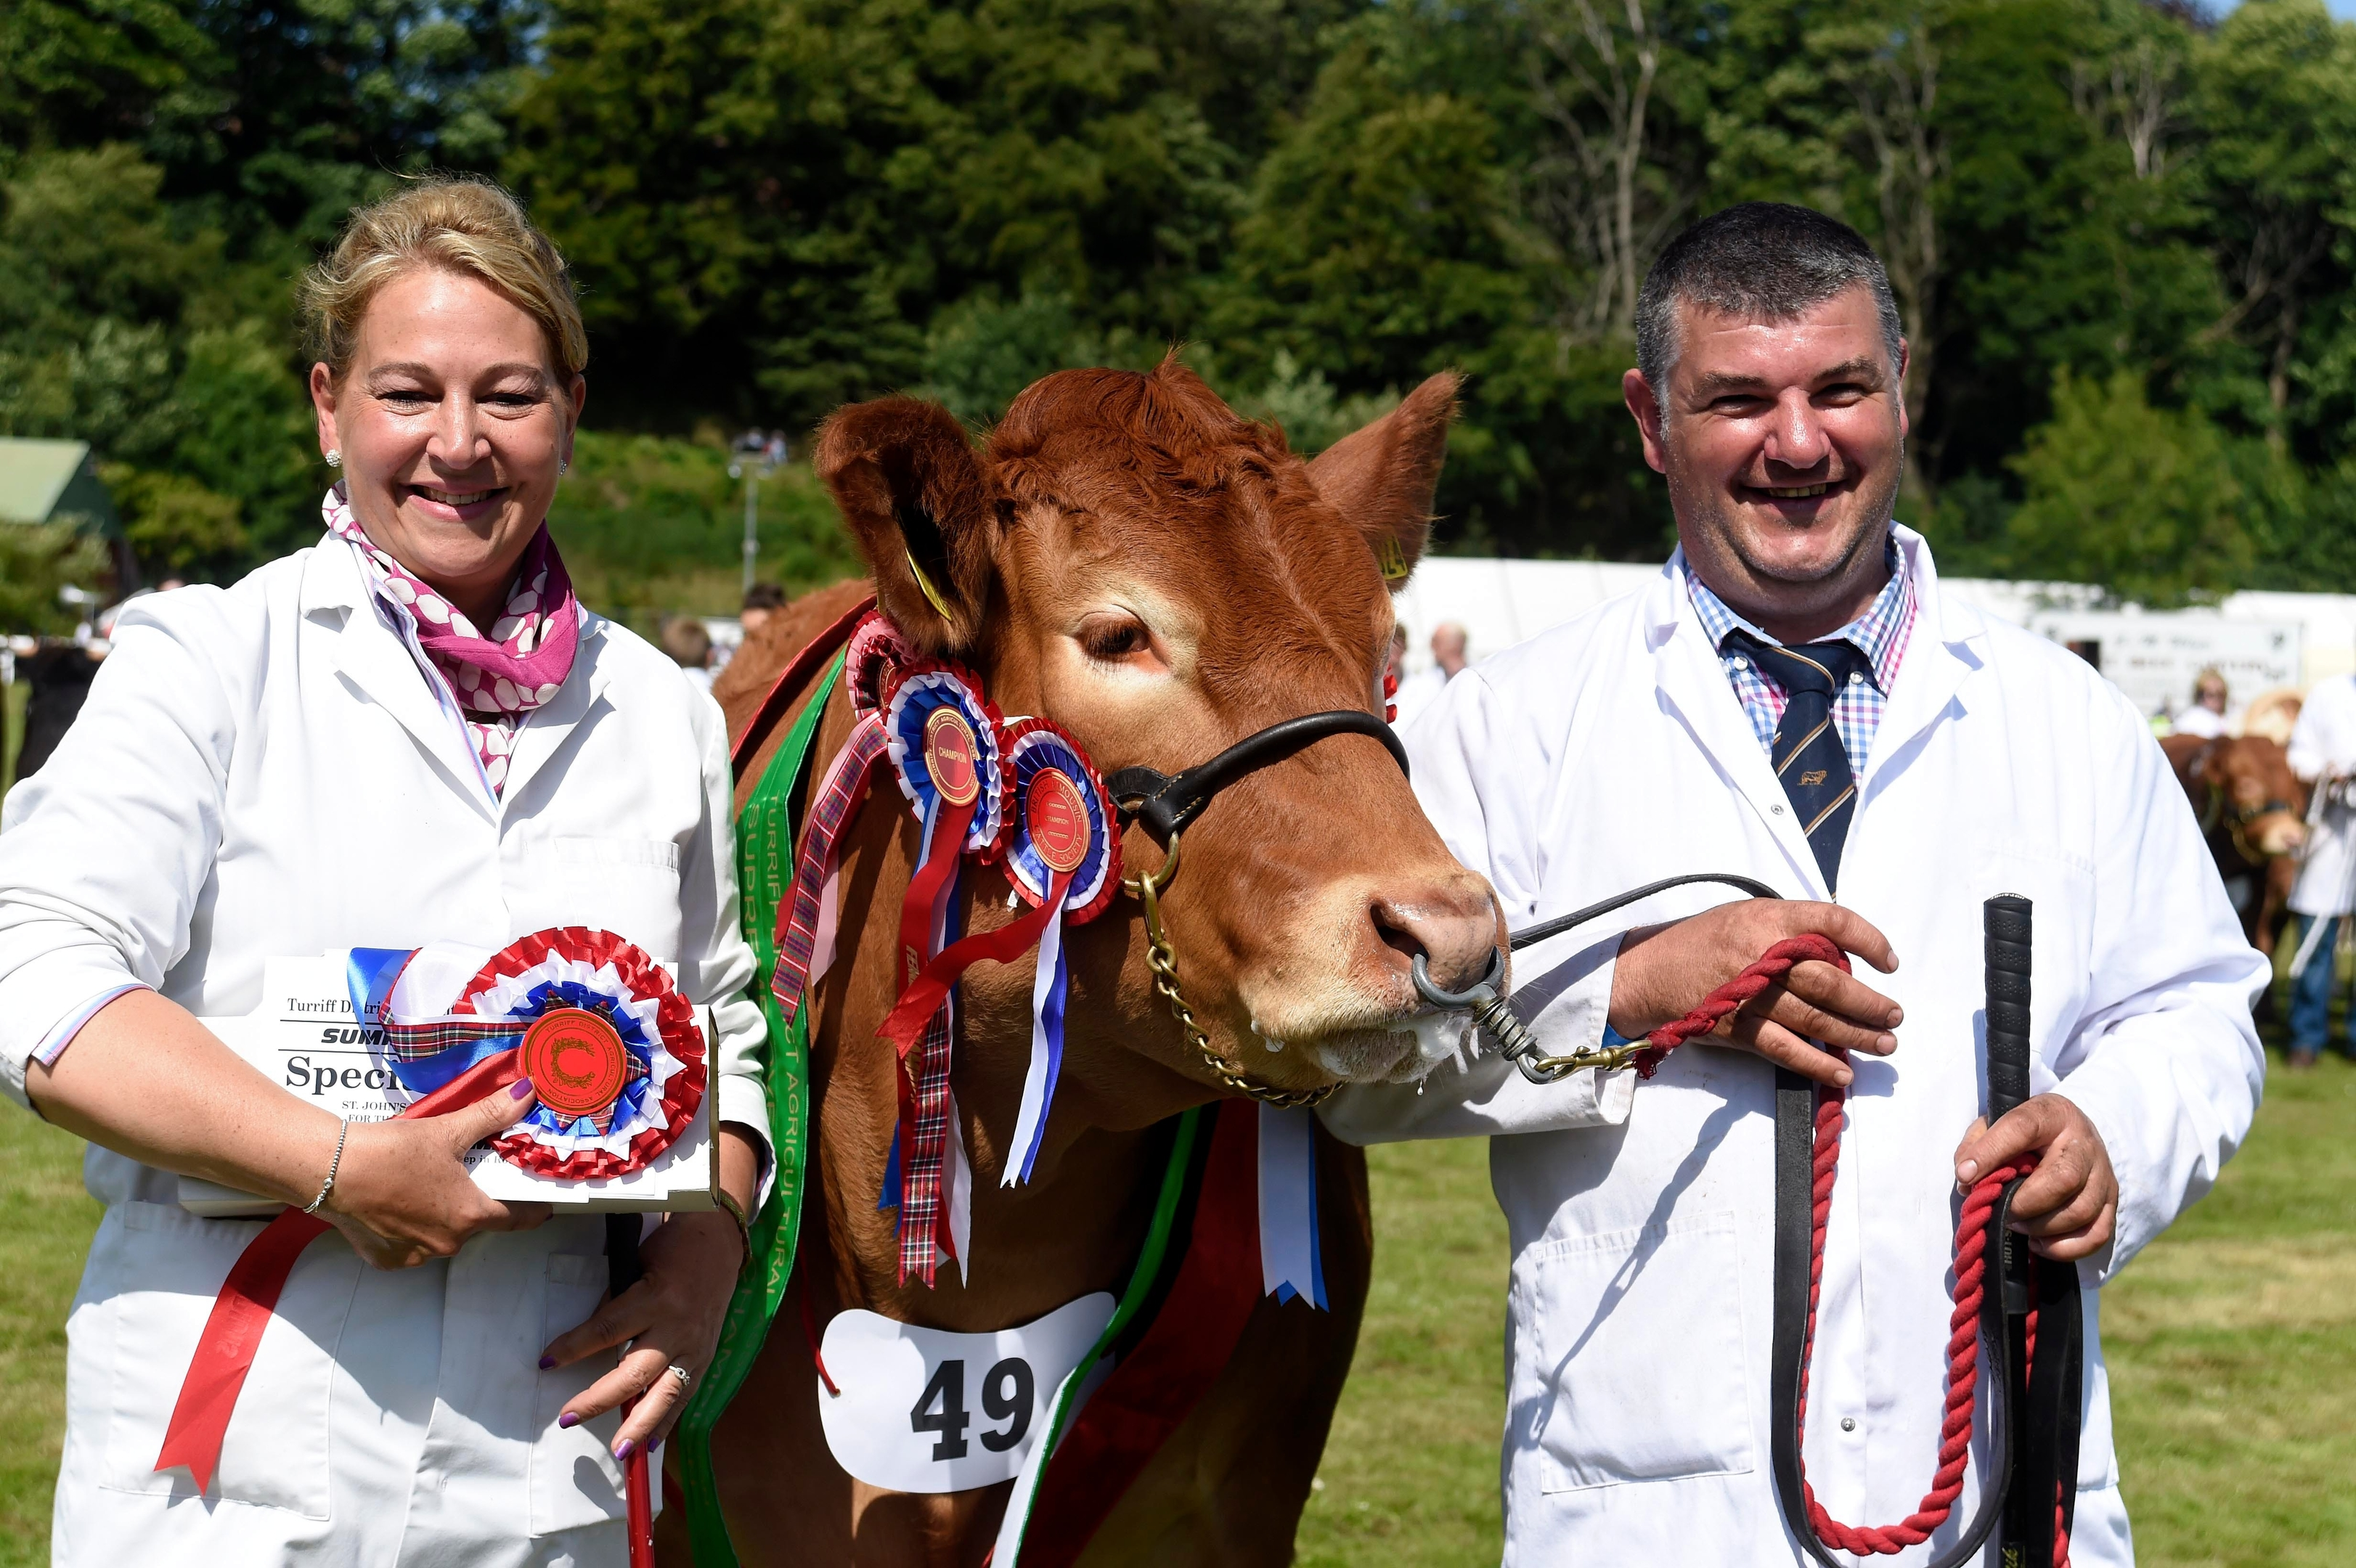 Doug McBeath and Sarah Jayne Jessop celebrate after taking best in show overall with poolehall iris, their limousin champion.